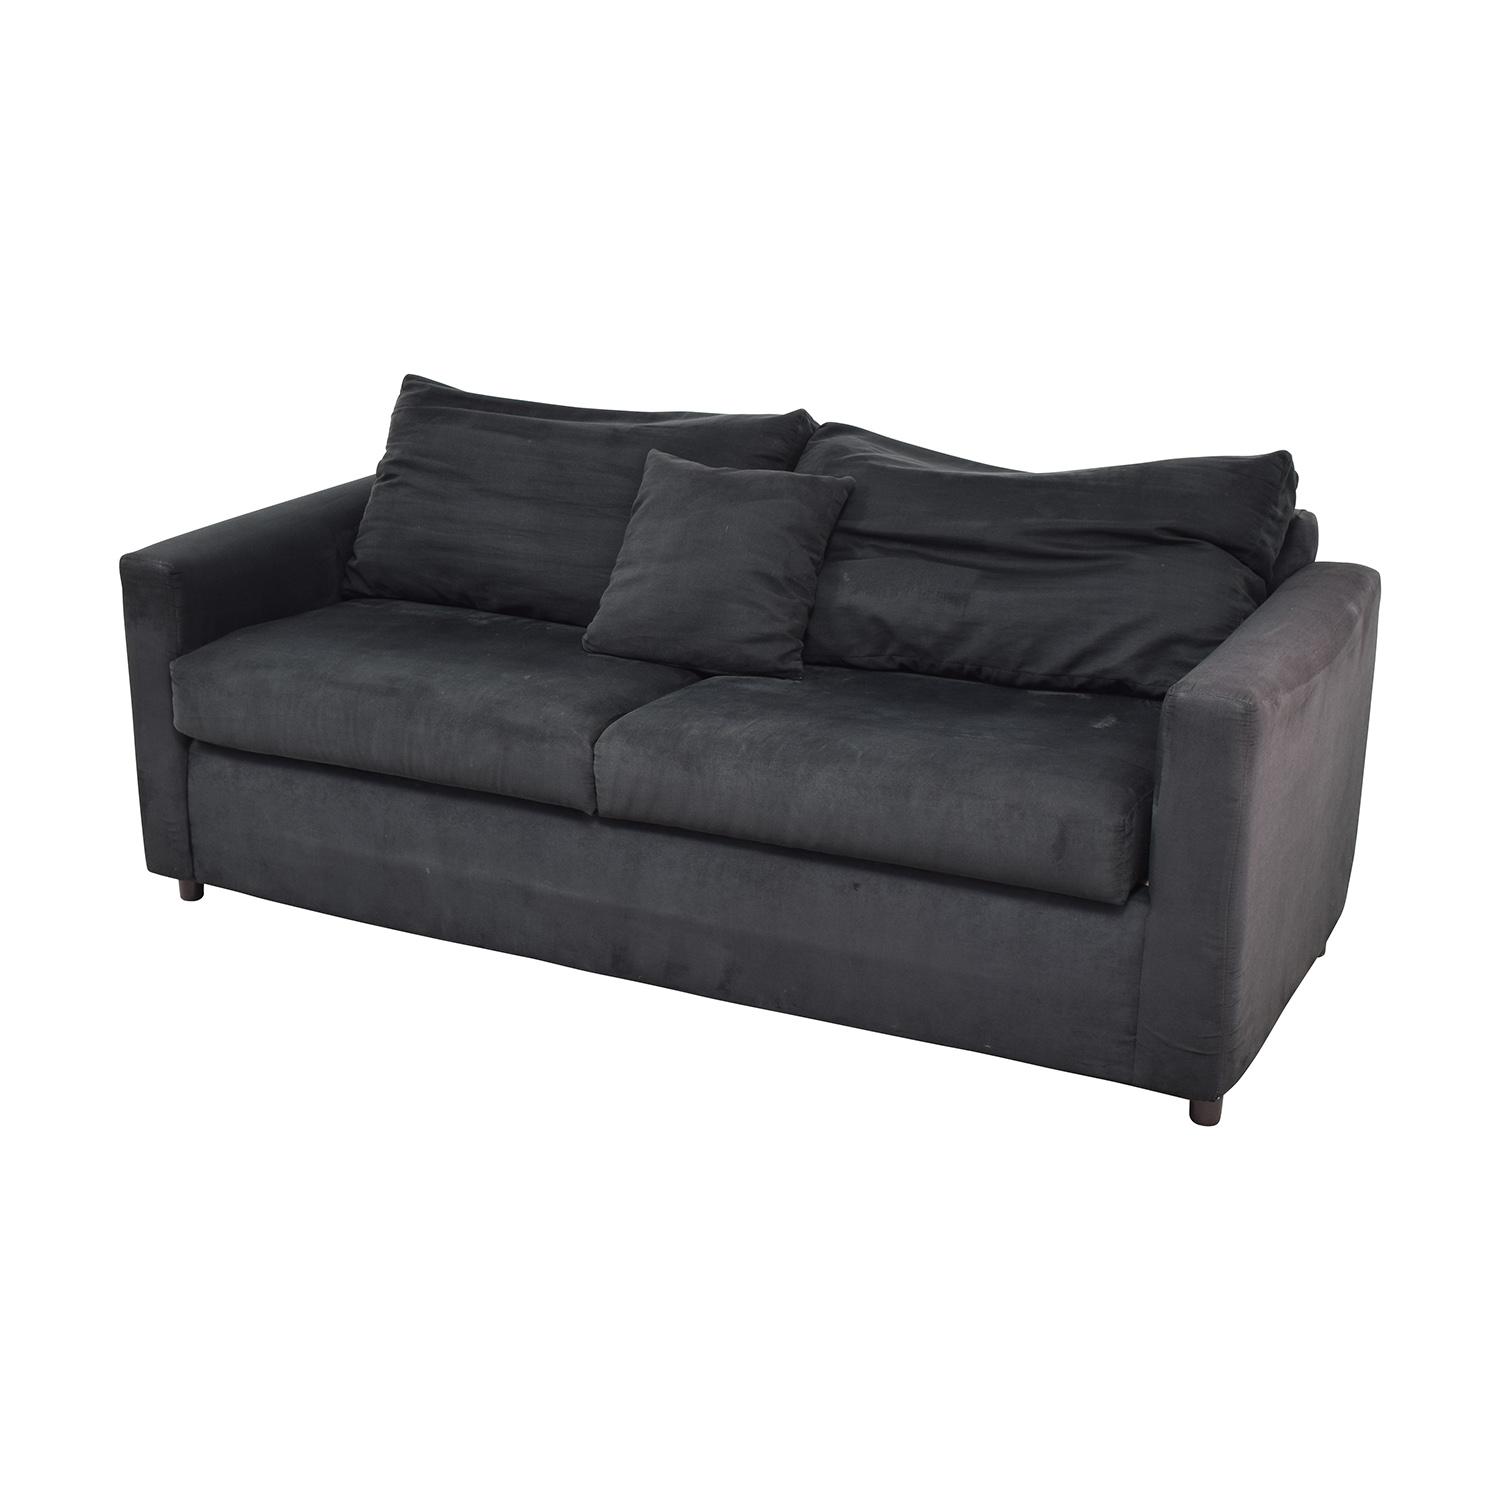 Bobs Furniture Black Micro Suede Couch Price